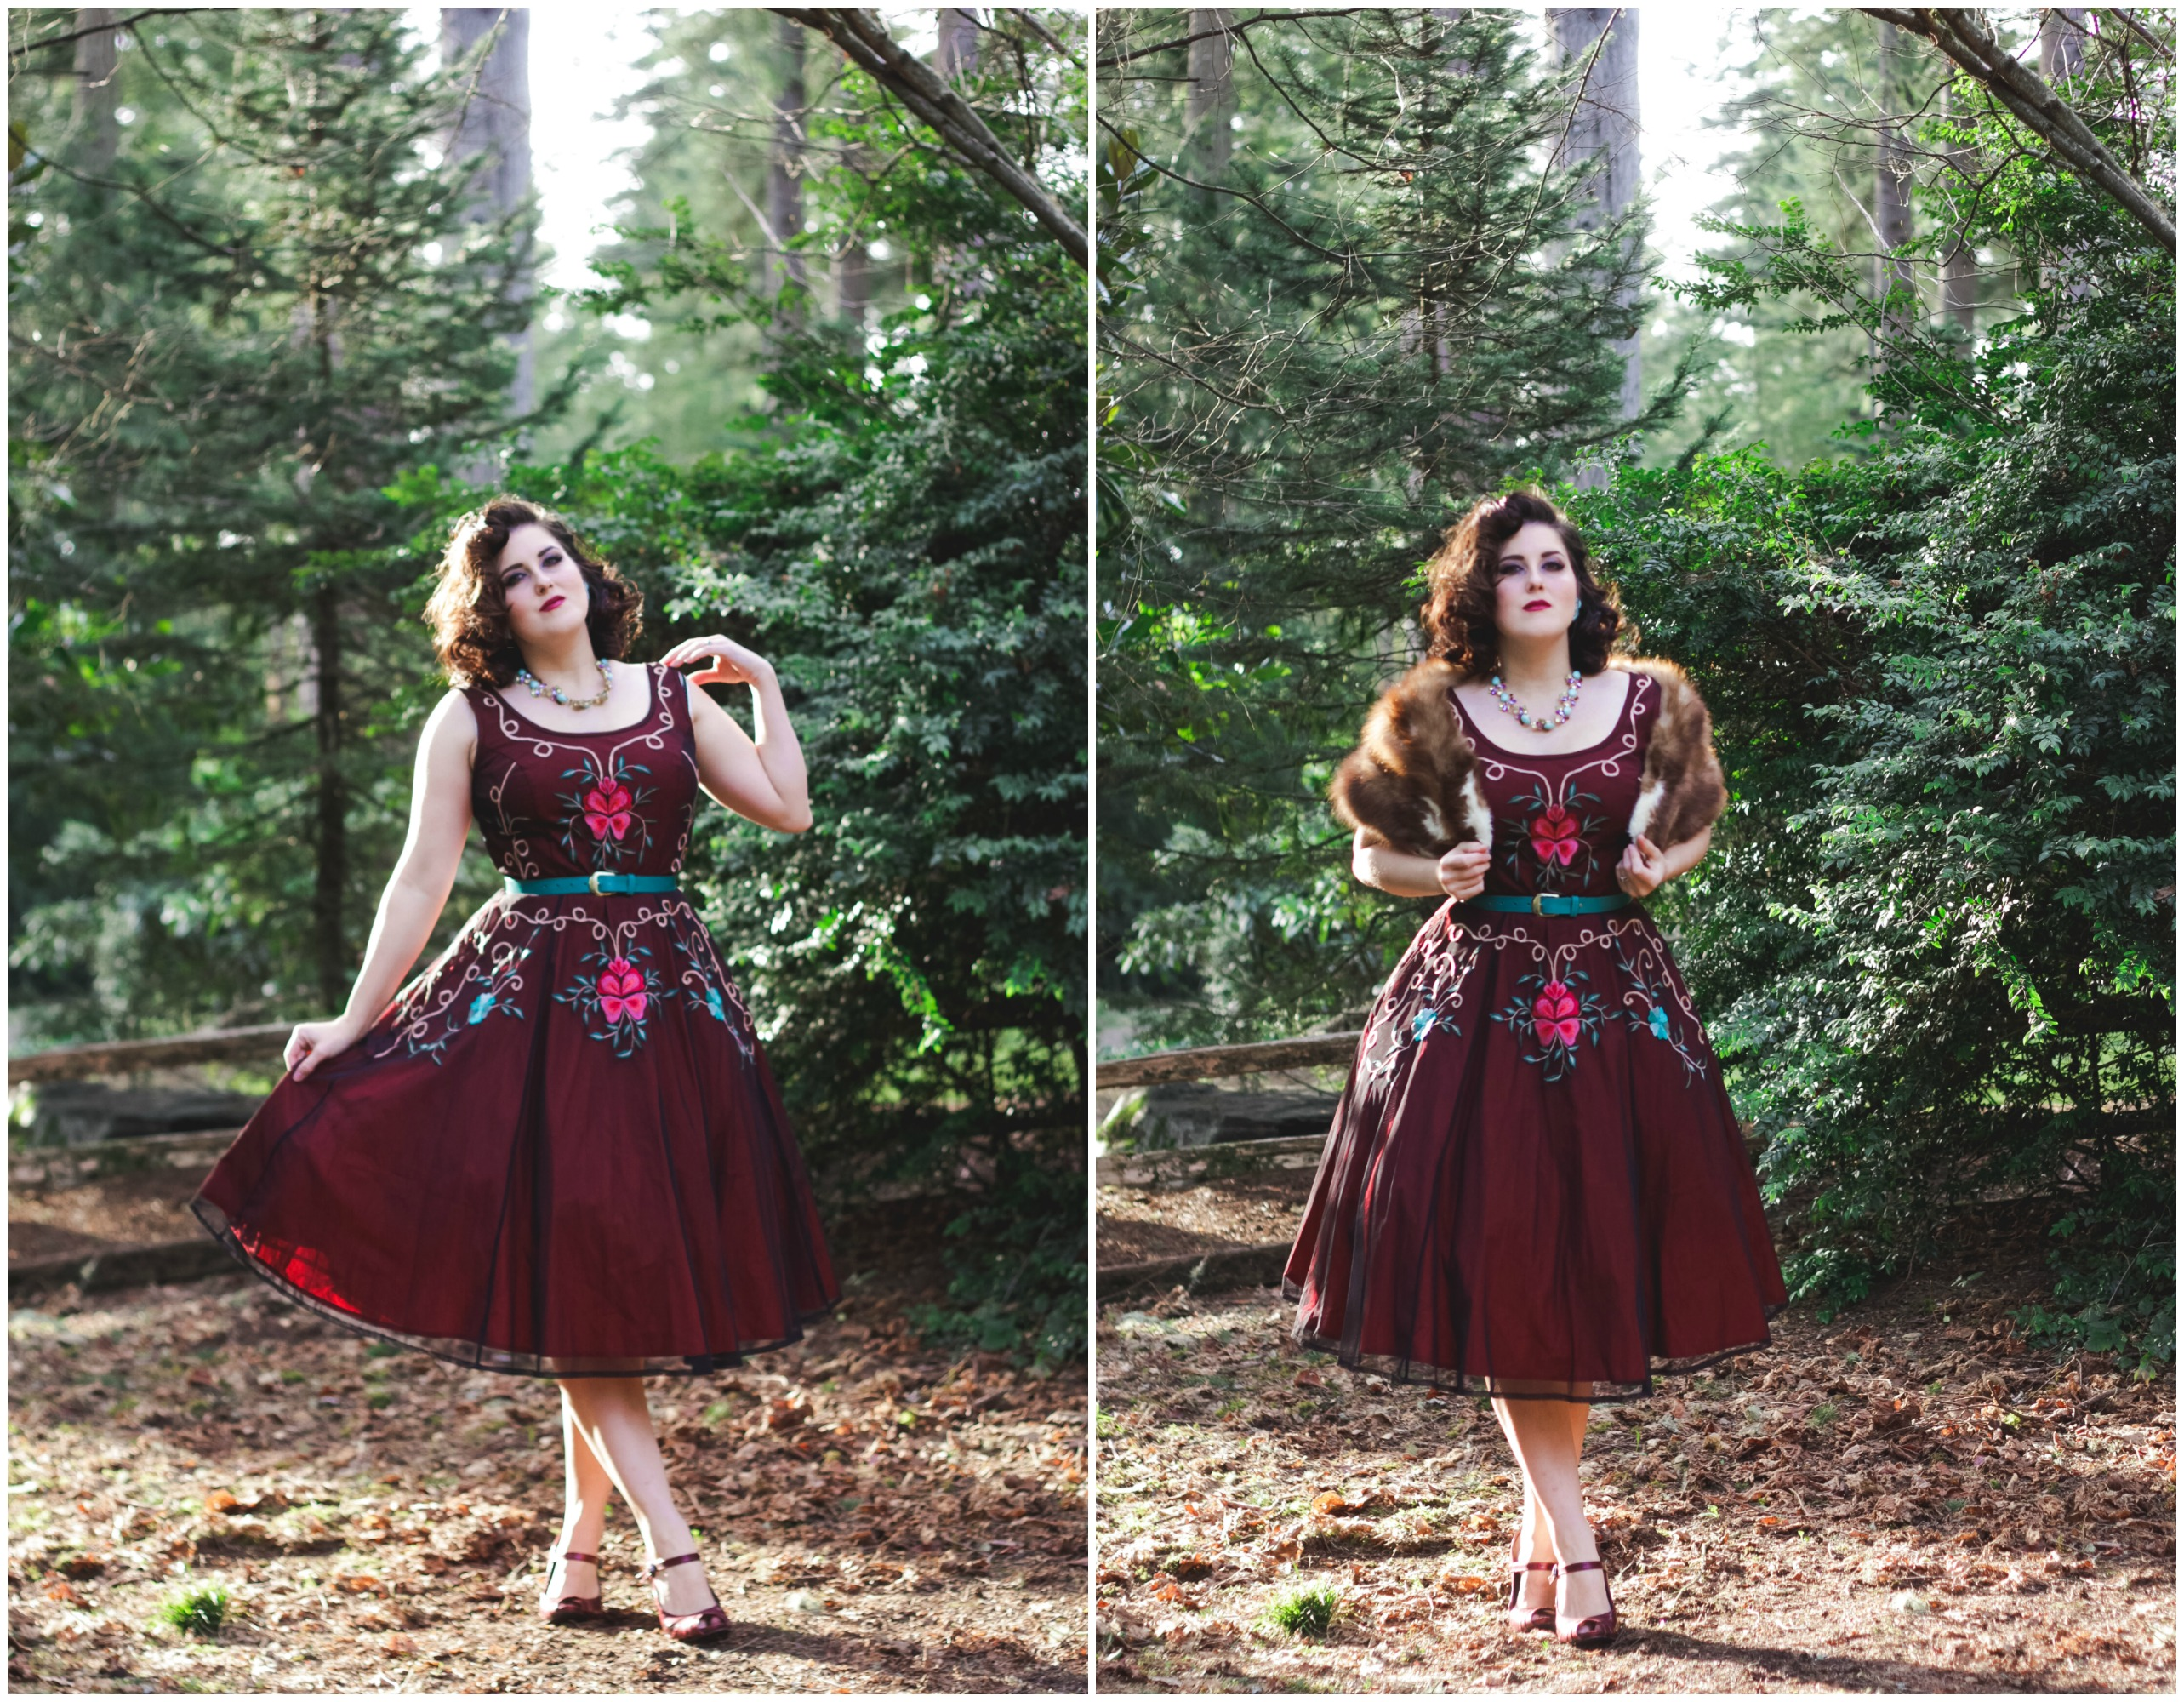 The Dress of Dreams | eyreeffect.com